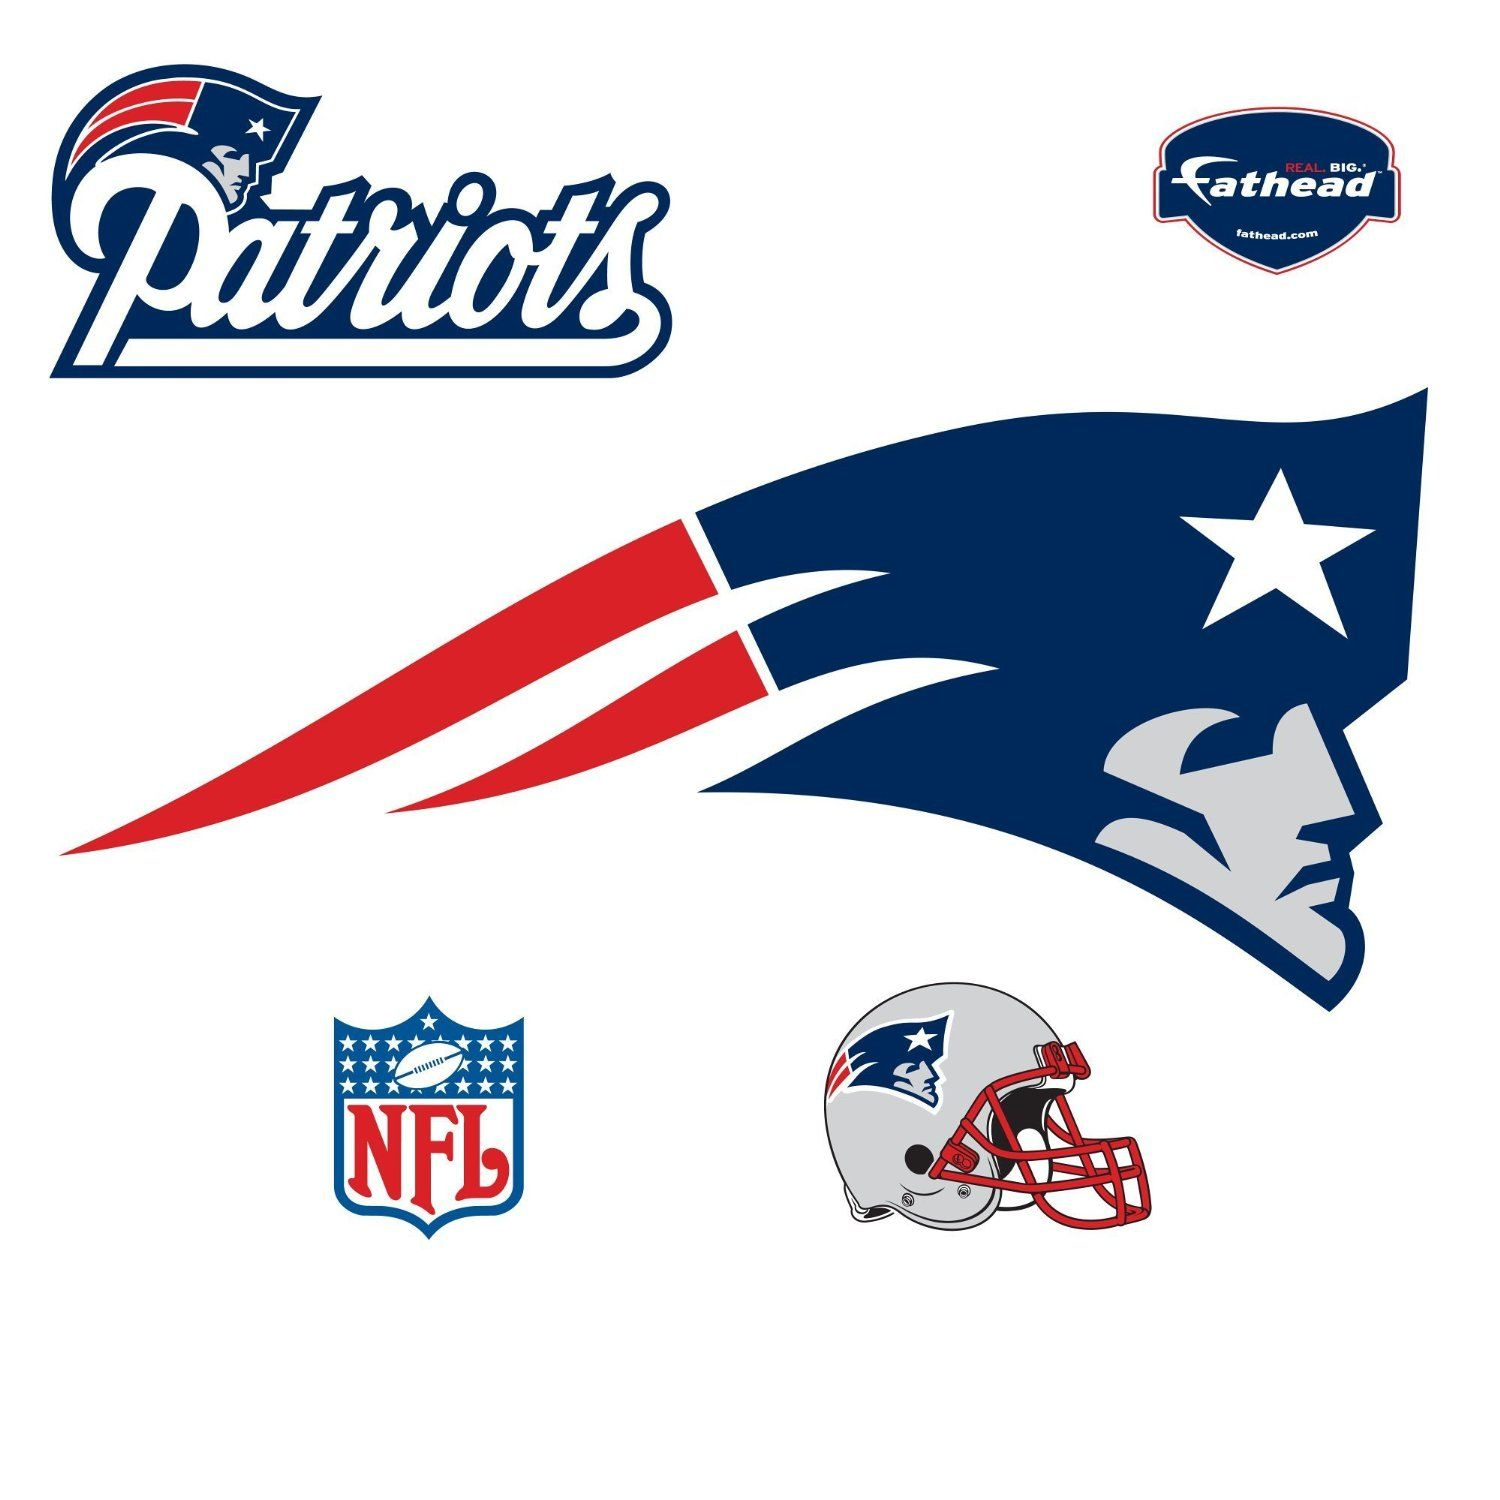 Nfl Football New England Patriots Wall Decal Up To Four Feet A Great Addition To Football Man Caves New England Patriots Logo England Patriots Logo Wall